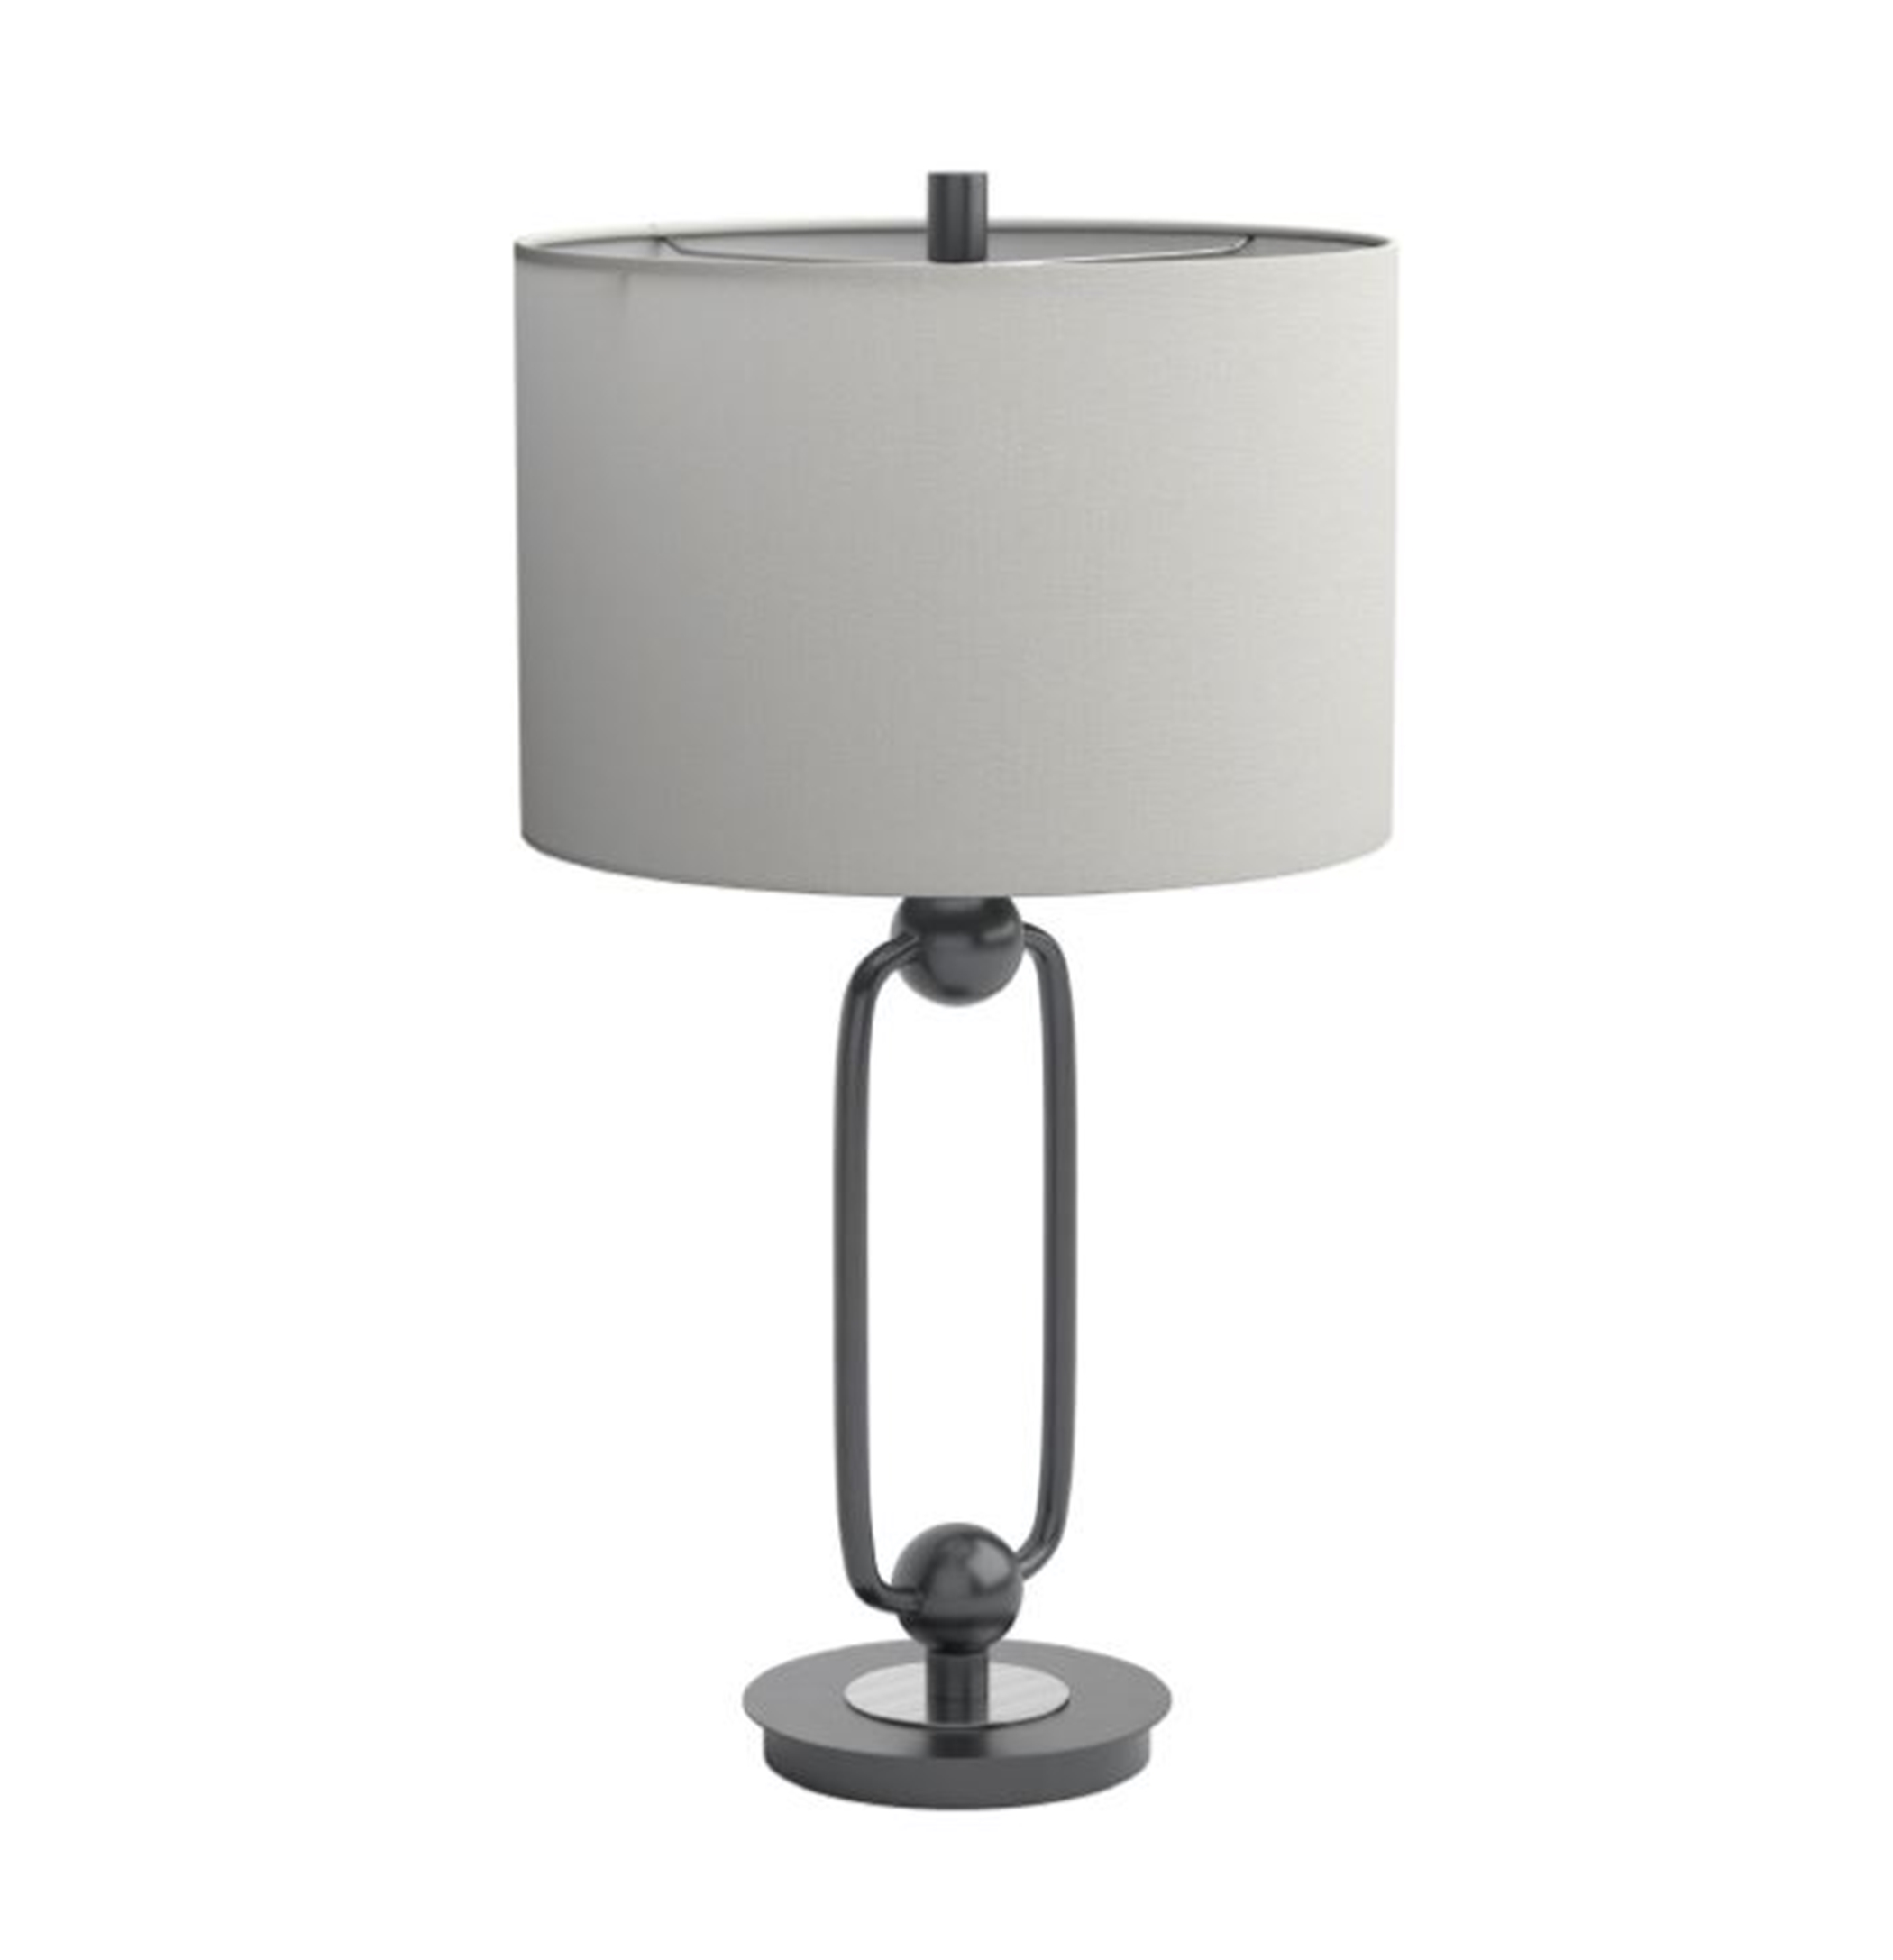 920121 - Table Lamp